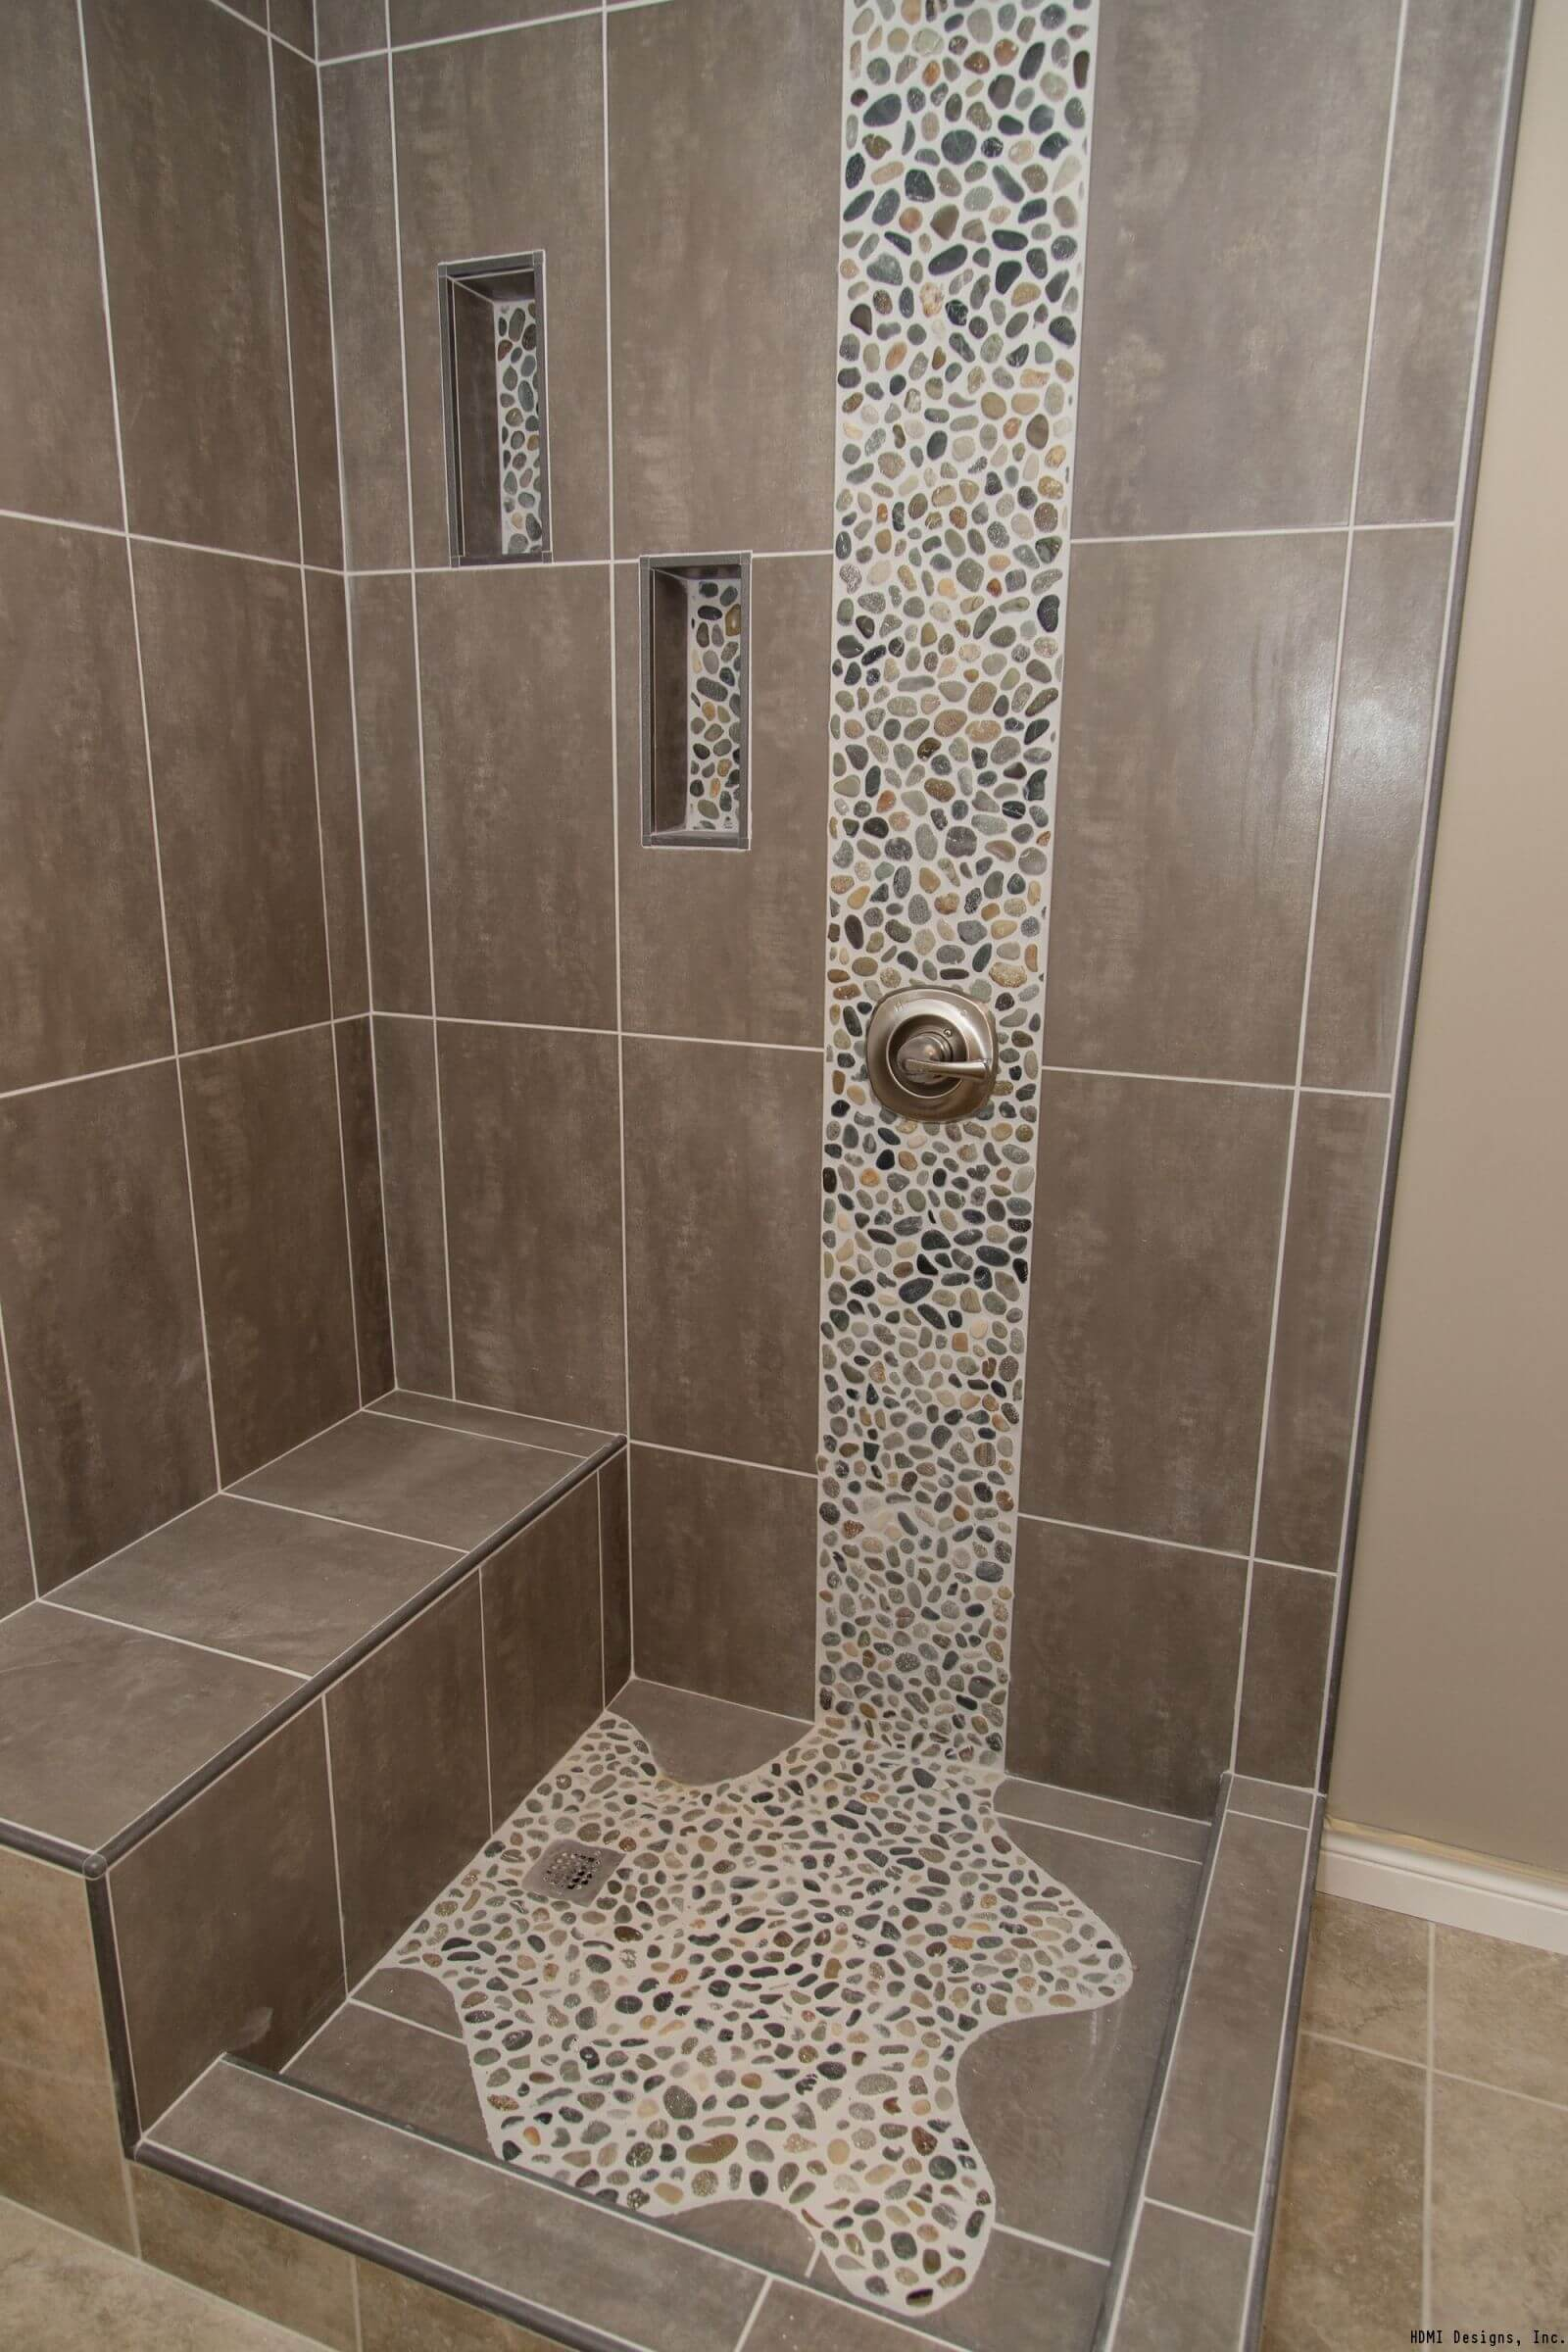 Bathroom shower floor tile ideas bathroom design ideas for Images of bathroom tile ideas